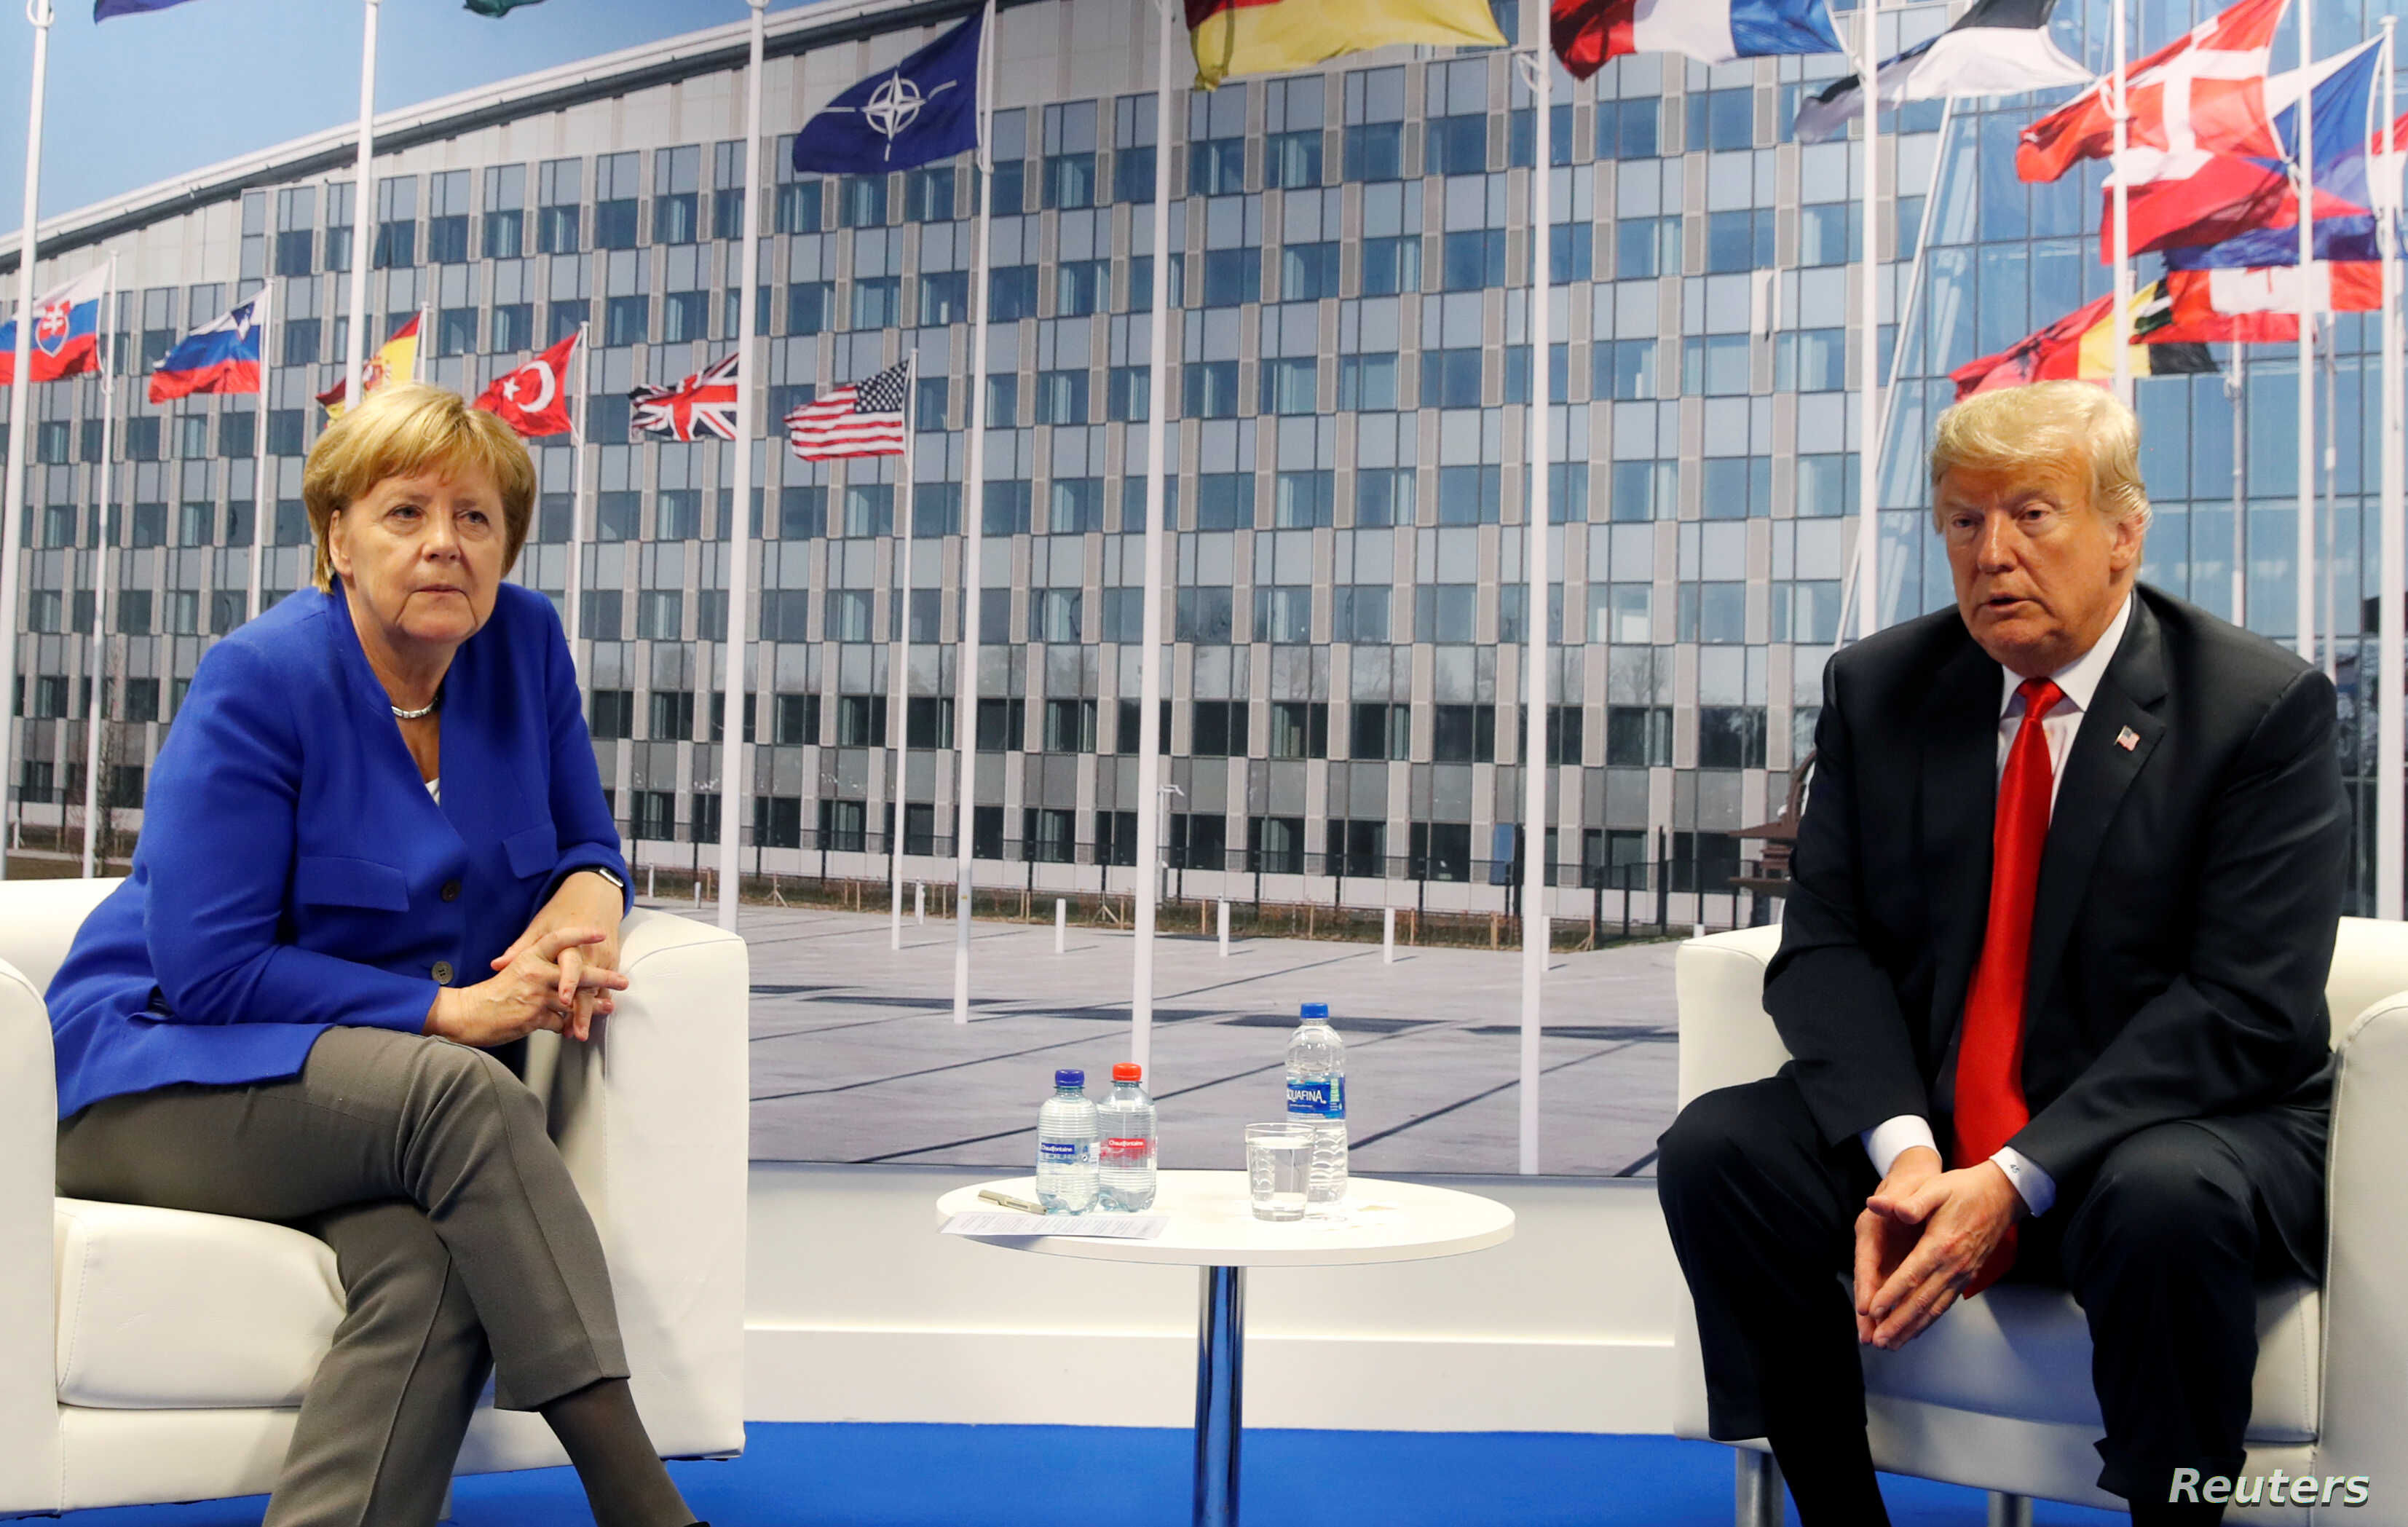 U.S. President Donald Trump meets with German Chancellor Angela Merkel during the NATO summit in Brussels, Belgium, July 11, 2018.